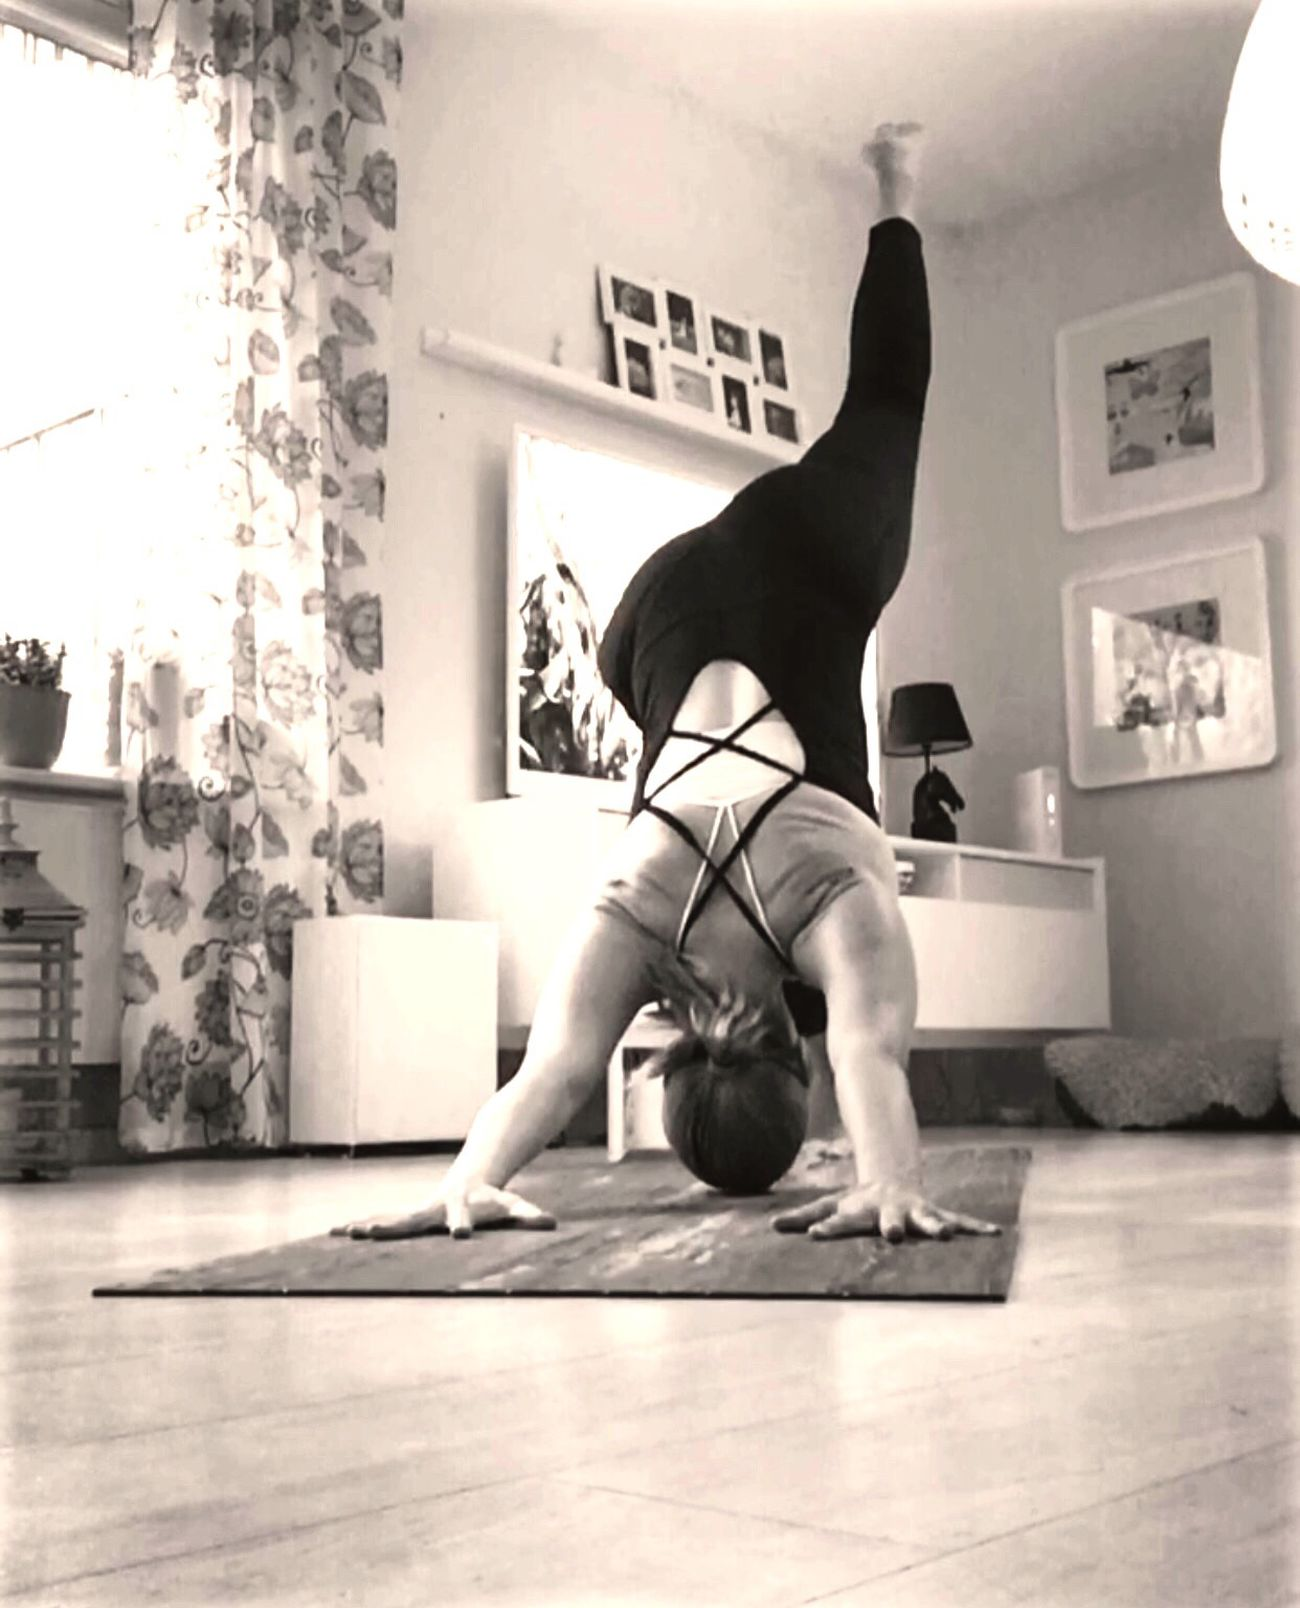 Yogamkesmehappy Full Length One Person Real People Blackandwhite Yoga Sweden Flexibility Fitness Motivation ! Gymshark Raw Beauty Yoga Pose Yogaeverydamnday Yoga Practice Fitover40 Practiceandalliscoming Yogainspiration My Year My View Self Portrait Women Hello World Eyemselfie Enjoy The New Normal Yogini Healthy Lifestyle